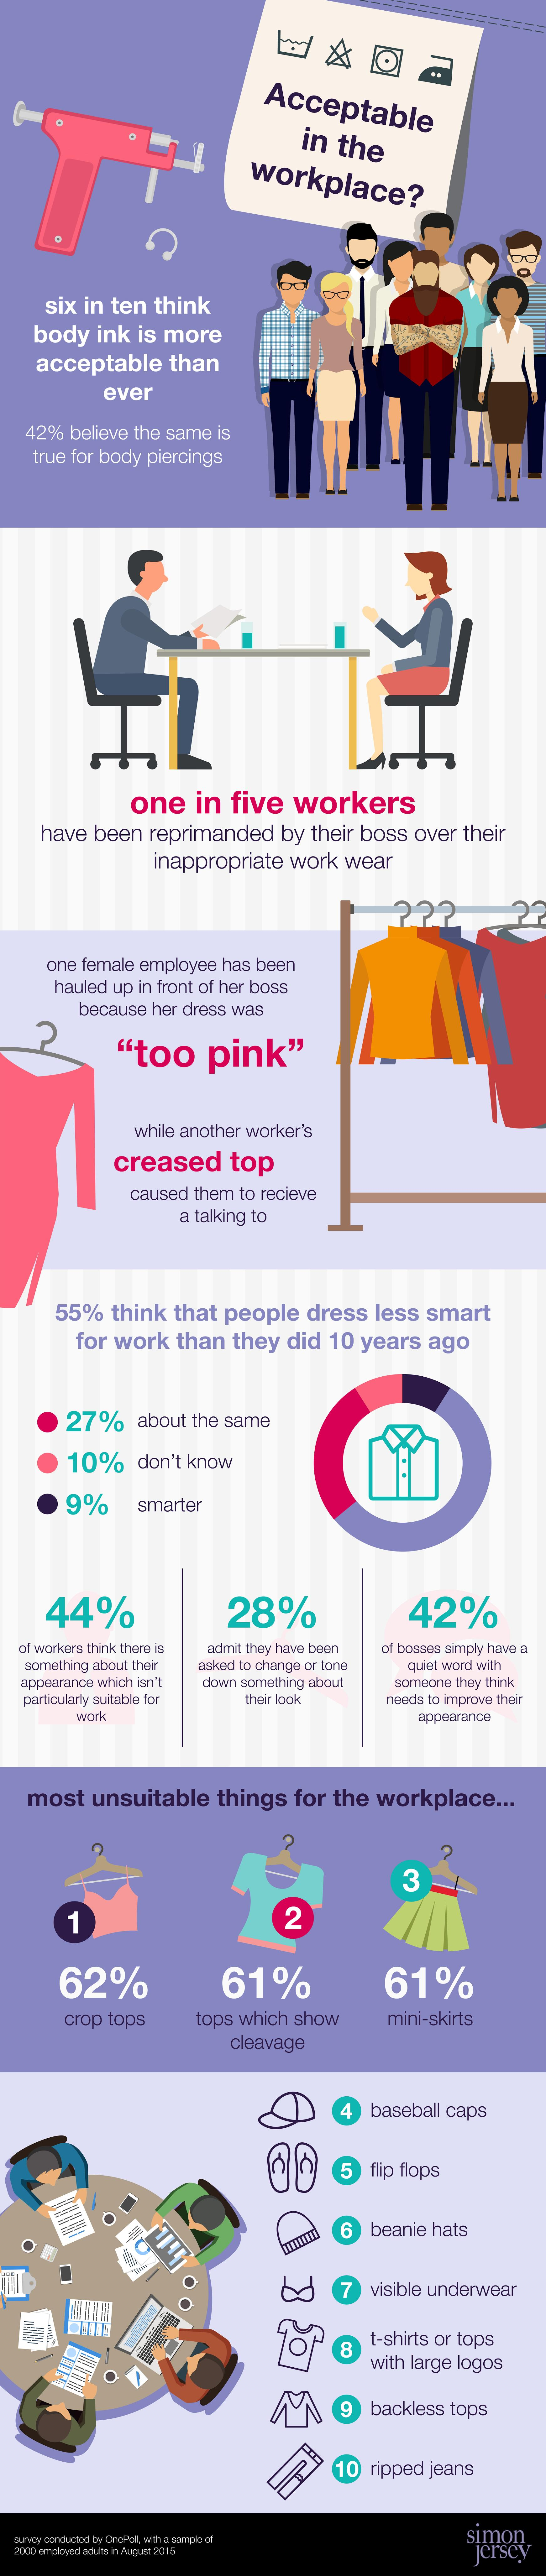 What not to wear infographic